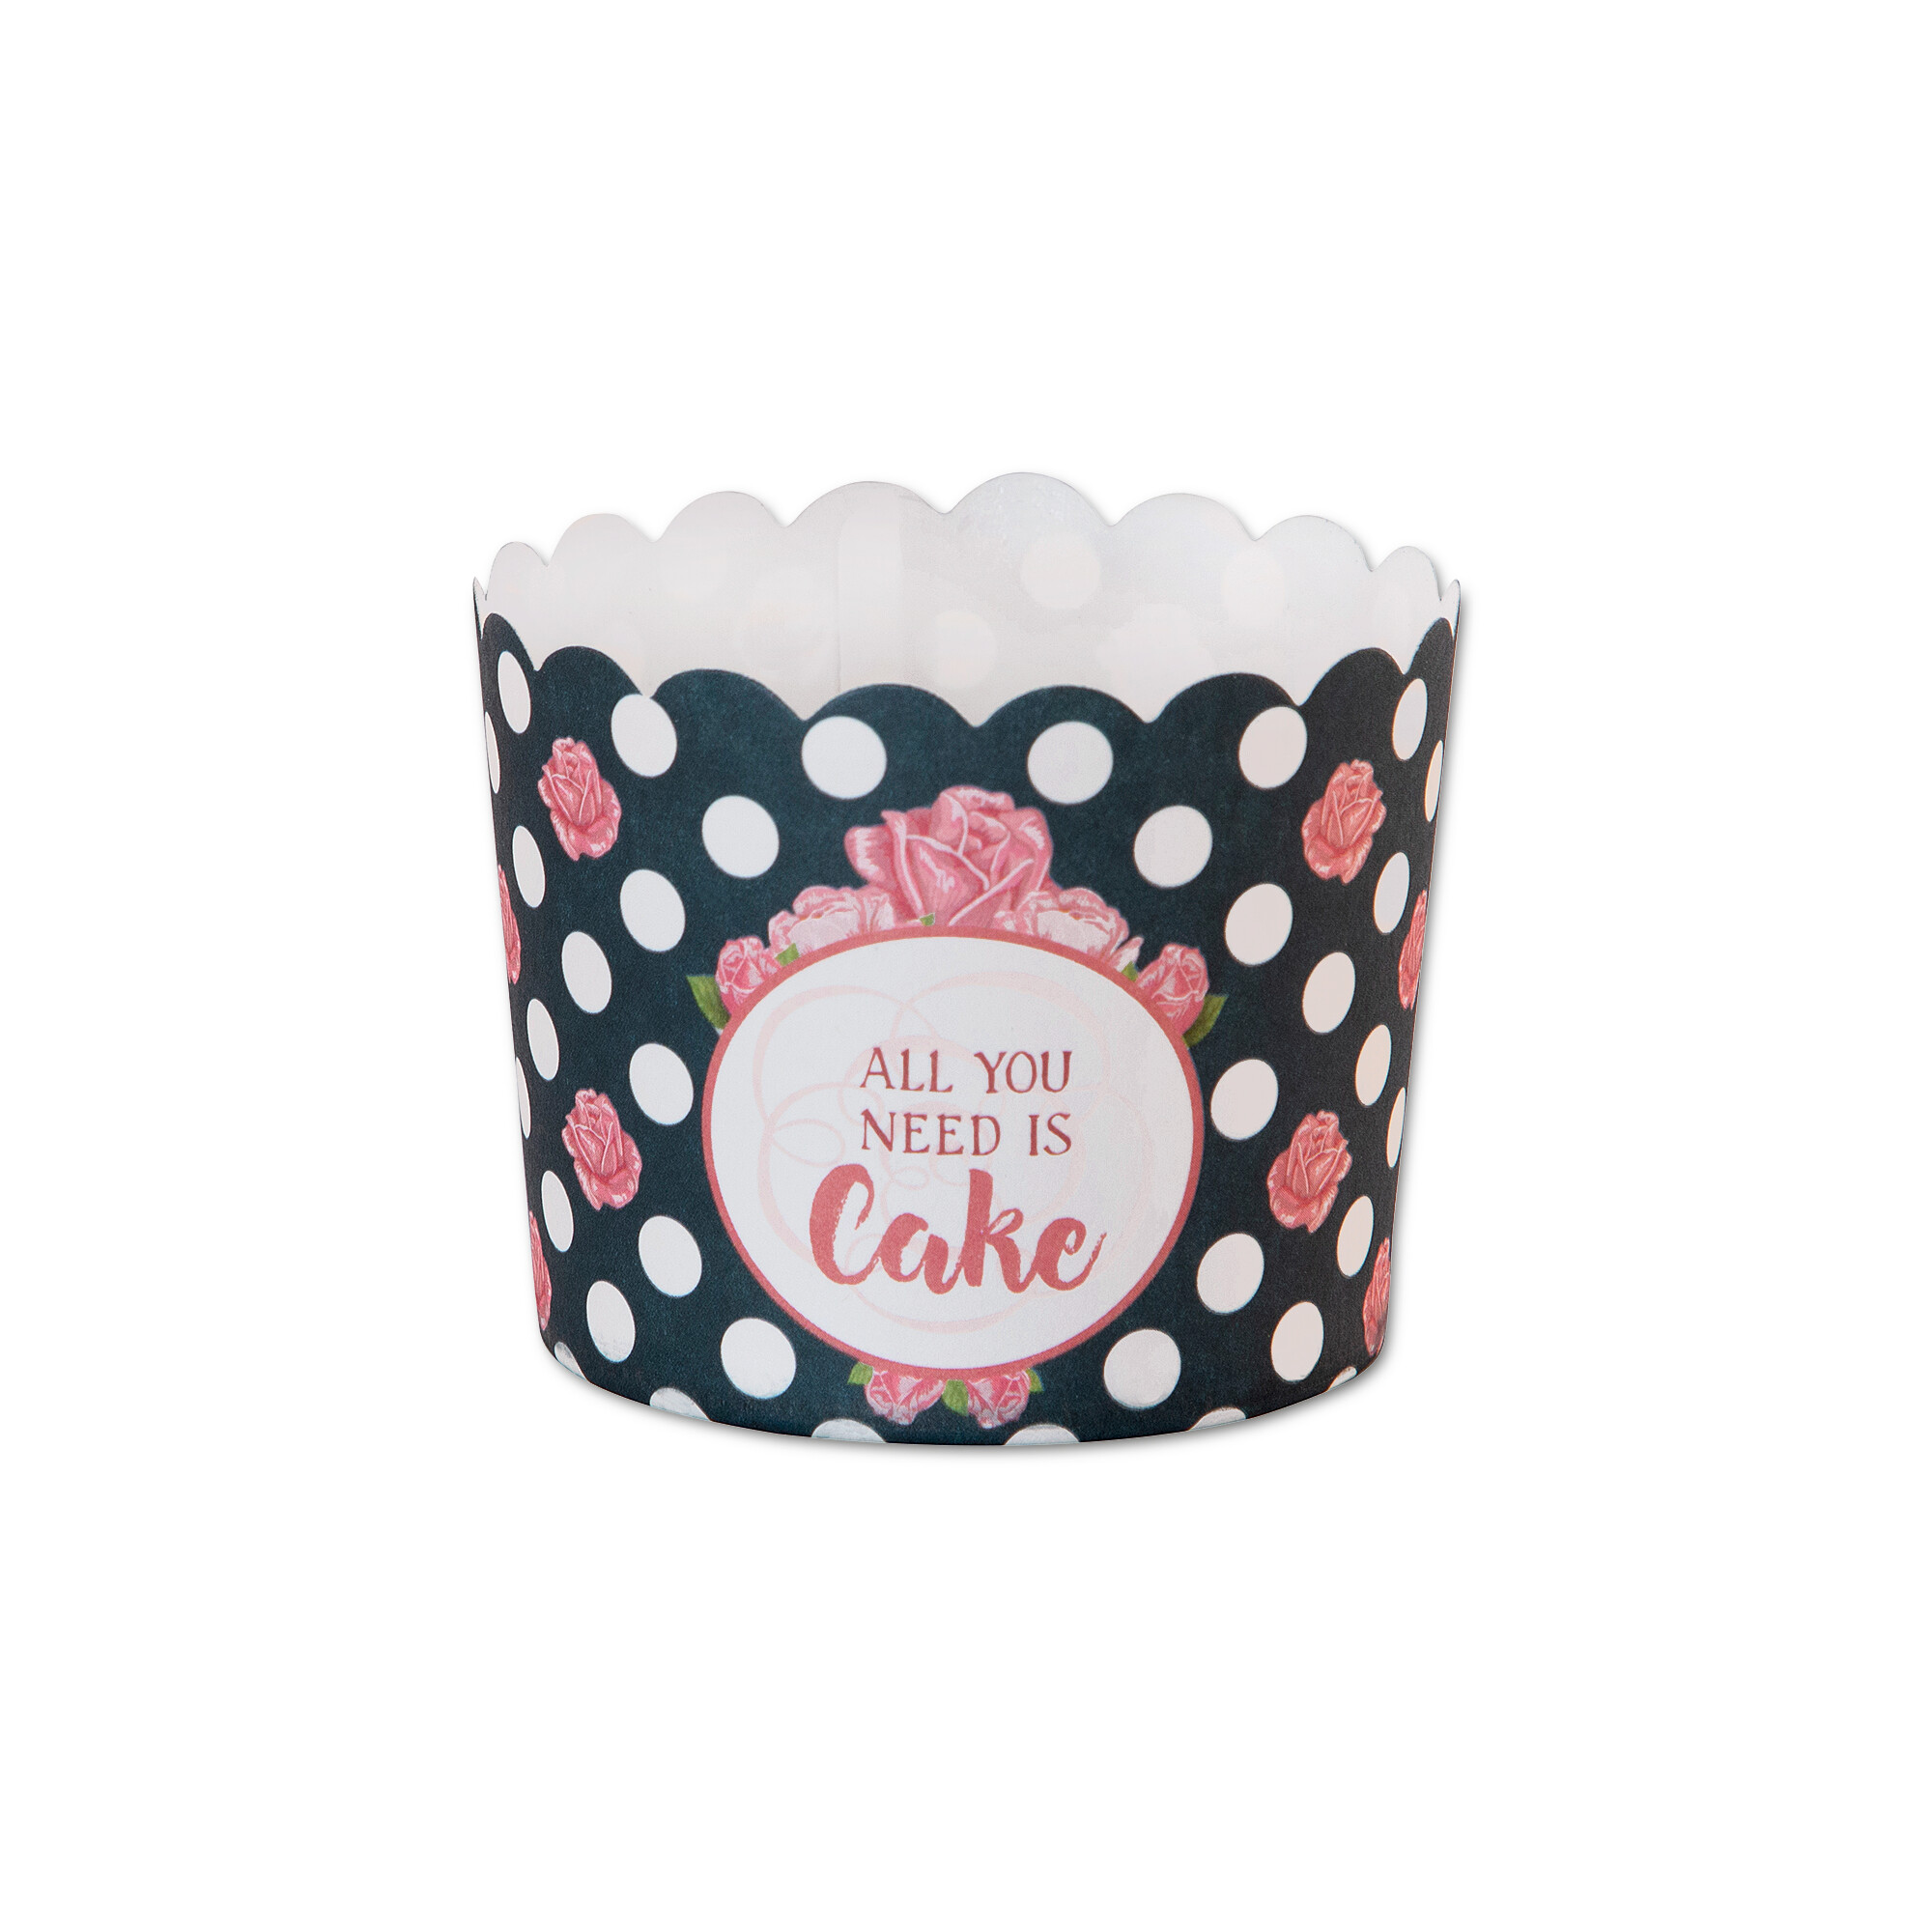 Cupcake liner - All You Need Is Cake - Maxi - 12 pieces